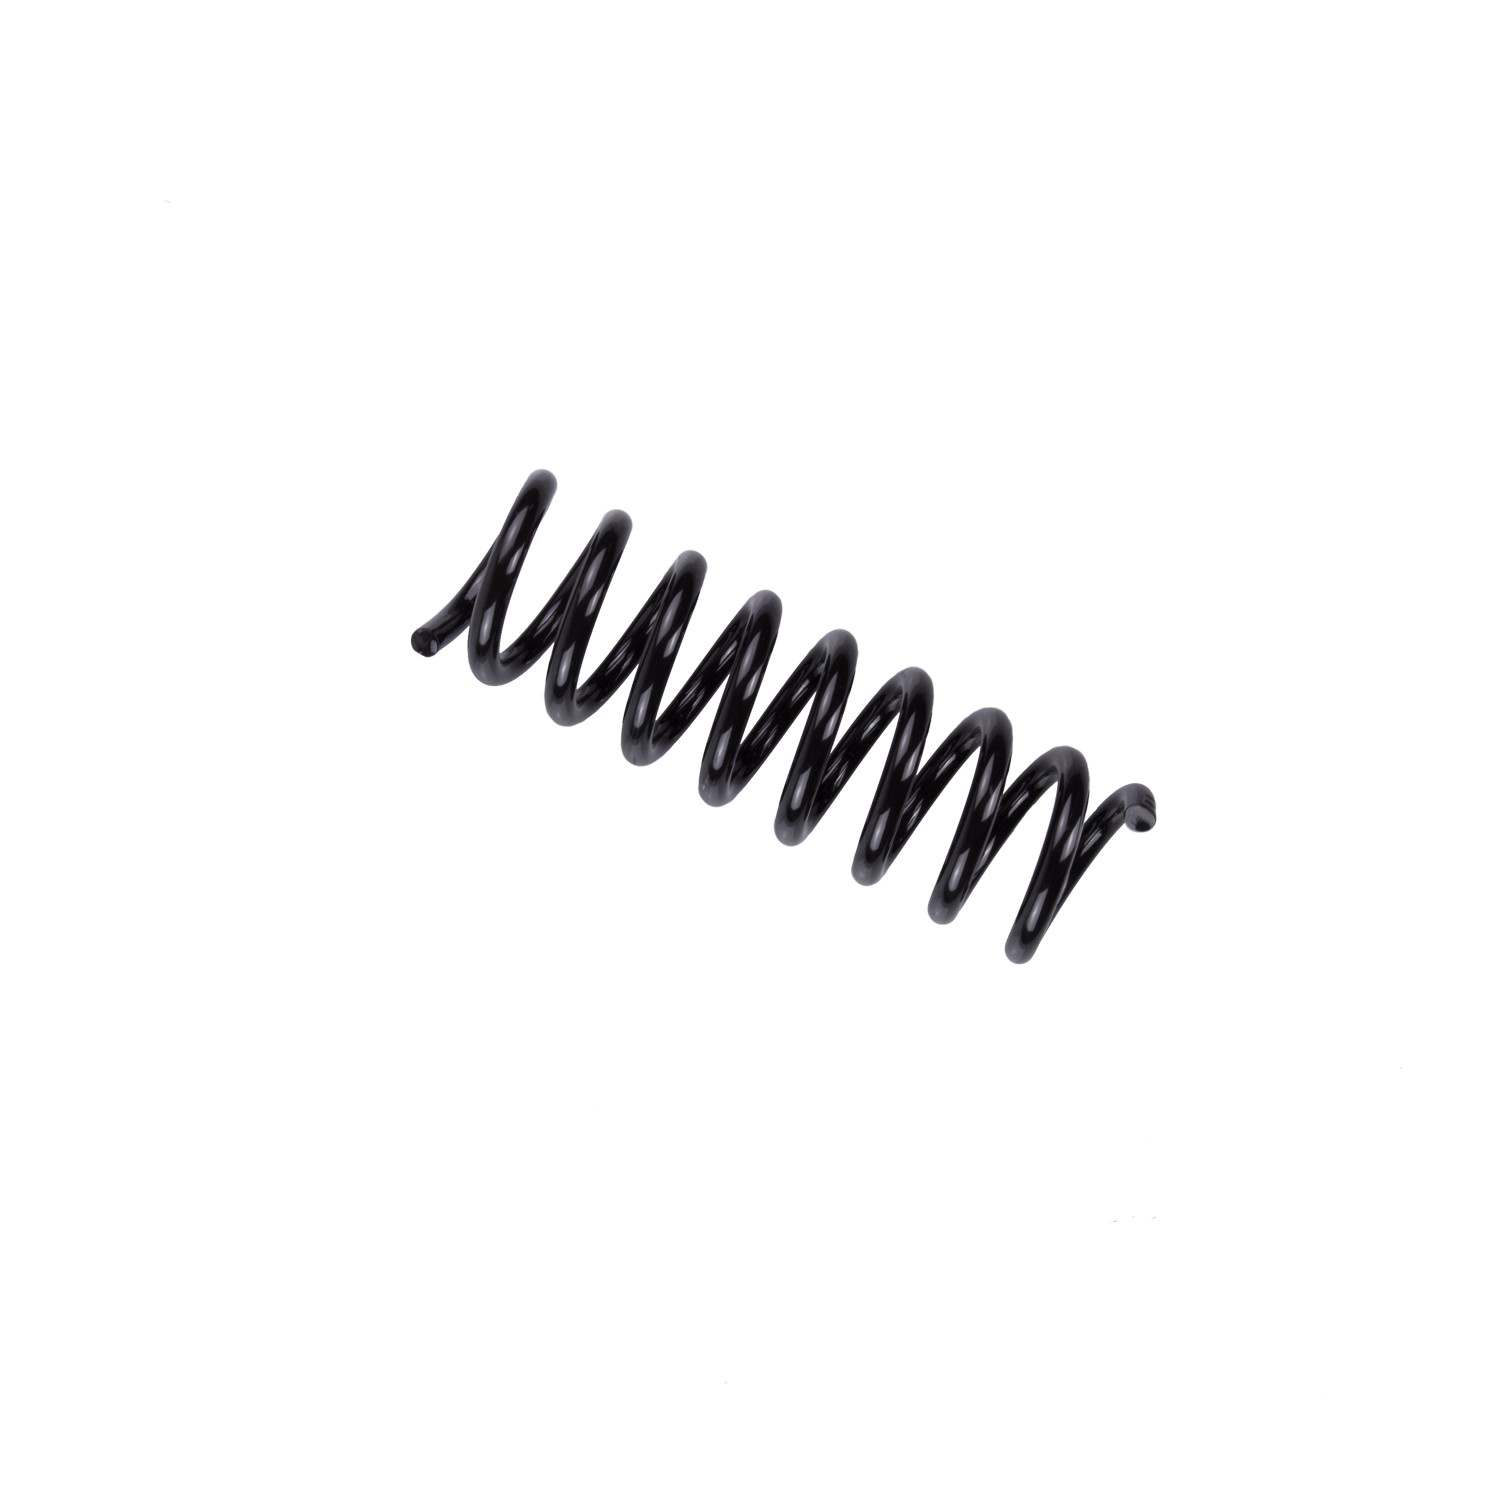 BILSTEIN - B3 OE Replacement Coil Spring (Rear) - BIL 36-226030